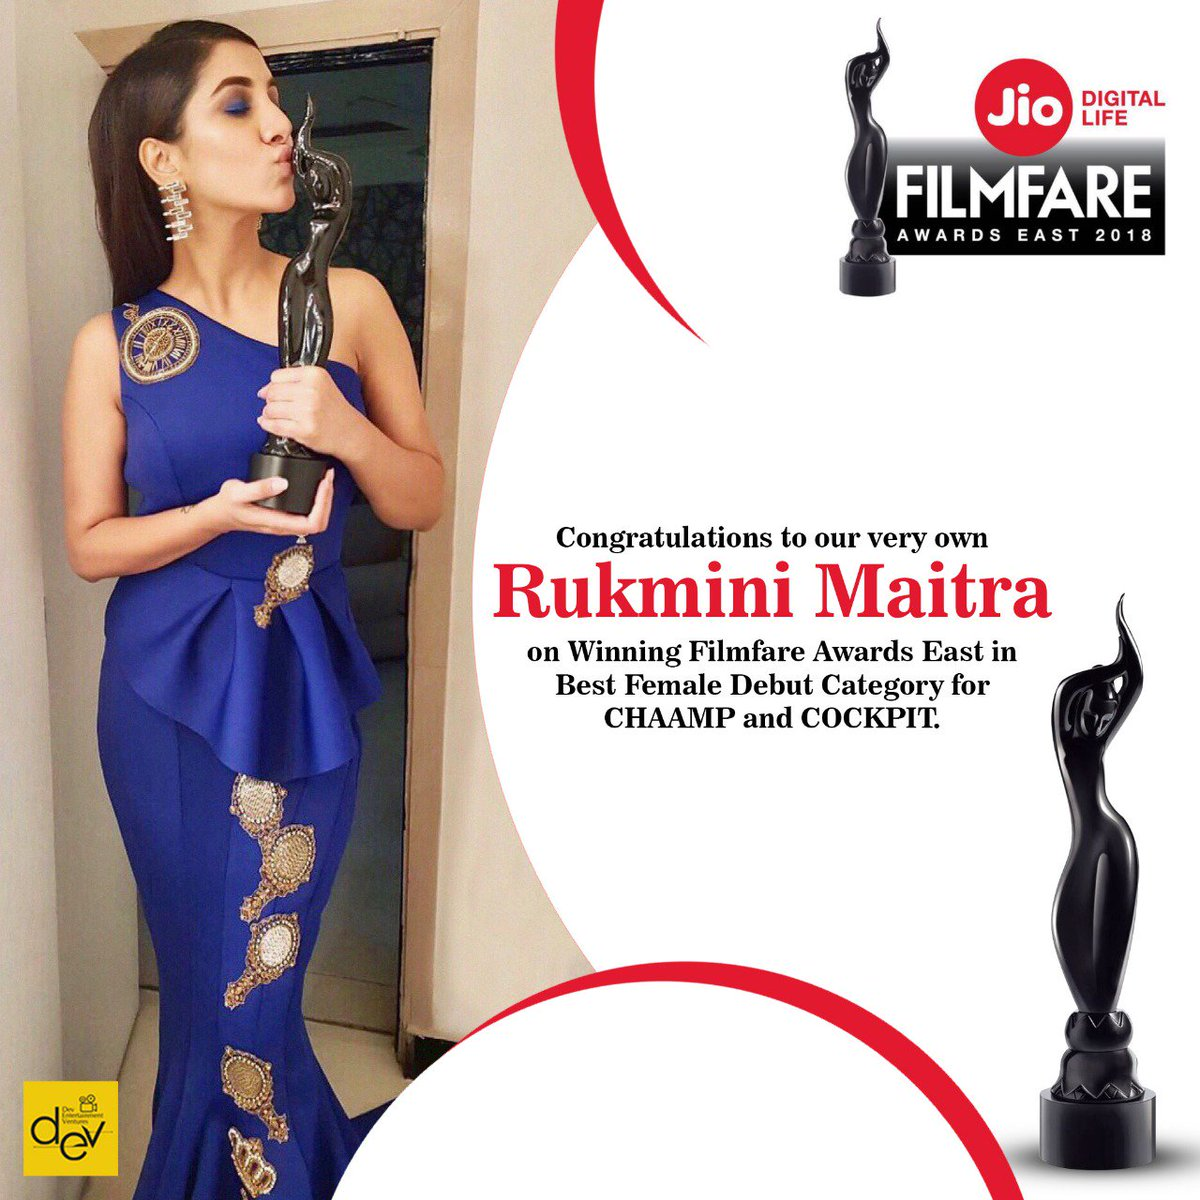 Congratulations to our very own @RukminiMaitra on Winning @filmfare Awards East in Best Female Debut Category for #CHAAMP and #COCKPIT.  #FilmfareAwardsEast2018 #JioFilmfareAwardsEast #FilmFare #FilmfareAwards #JioFilmfareAwards.